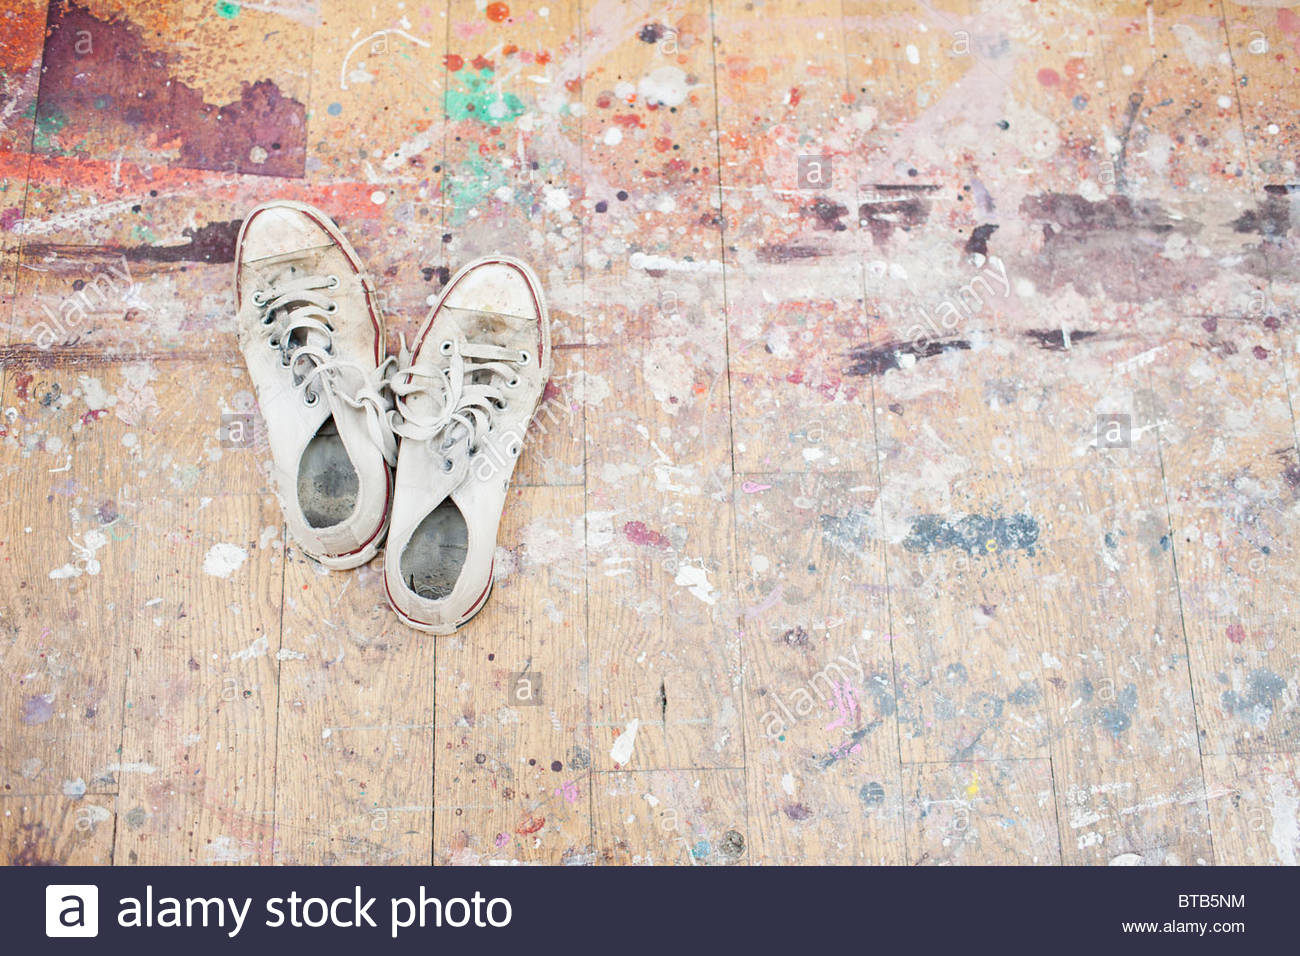 Sneakers on paint-spattered wood floor - Stock Image